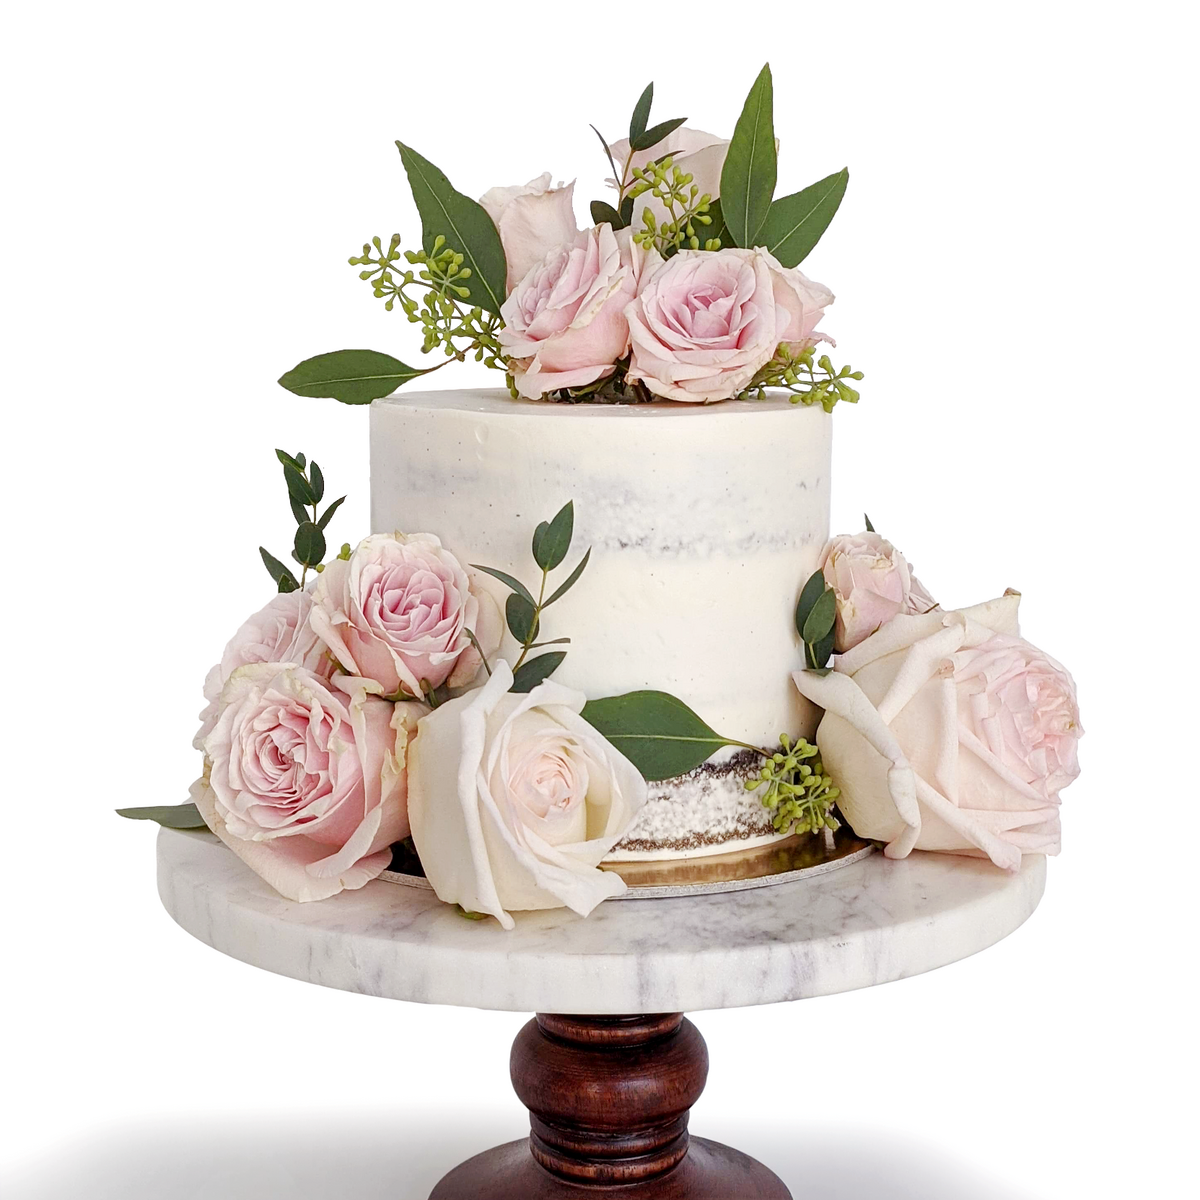 Whippt Kitchen - wedding cutting cake Aug 15, 2020 3